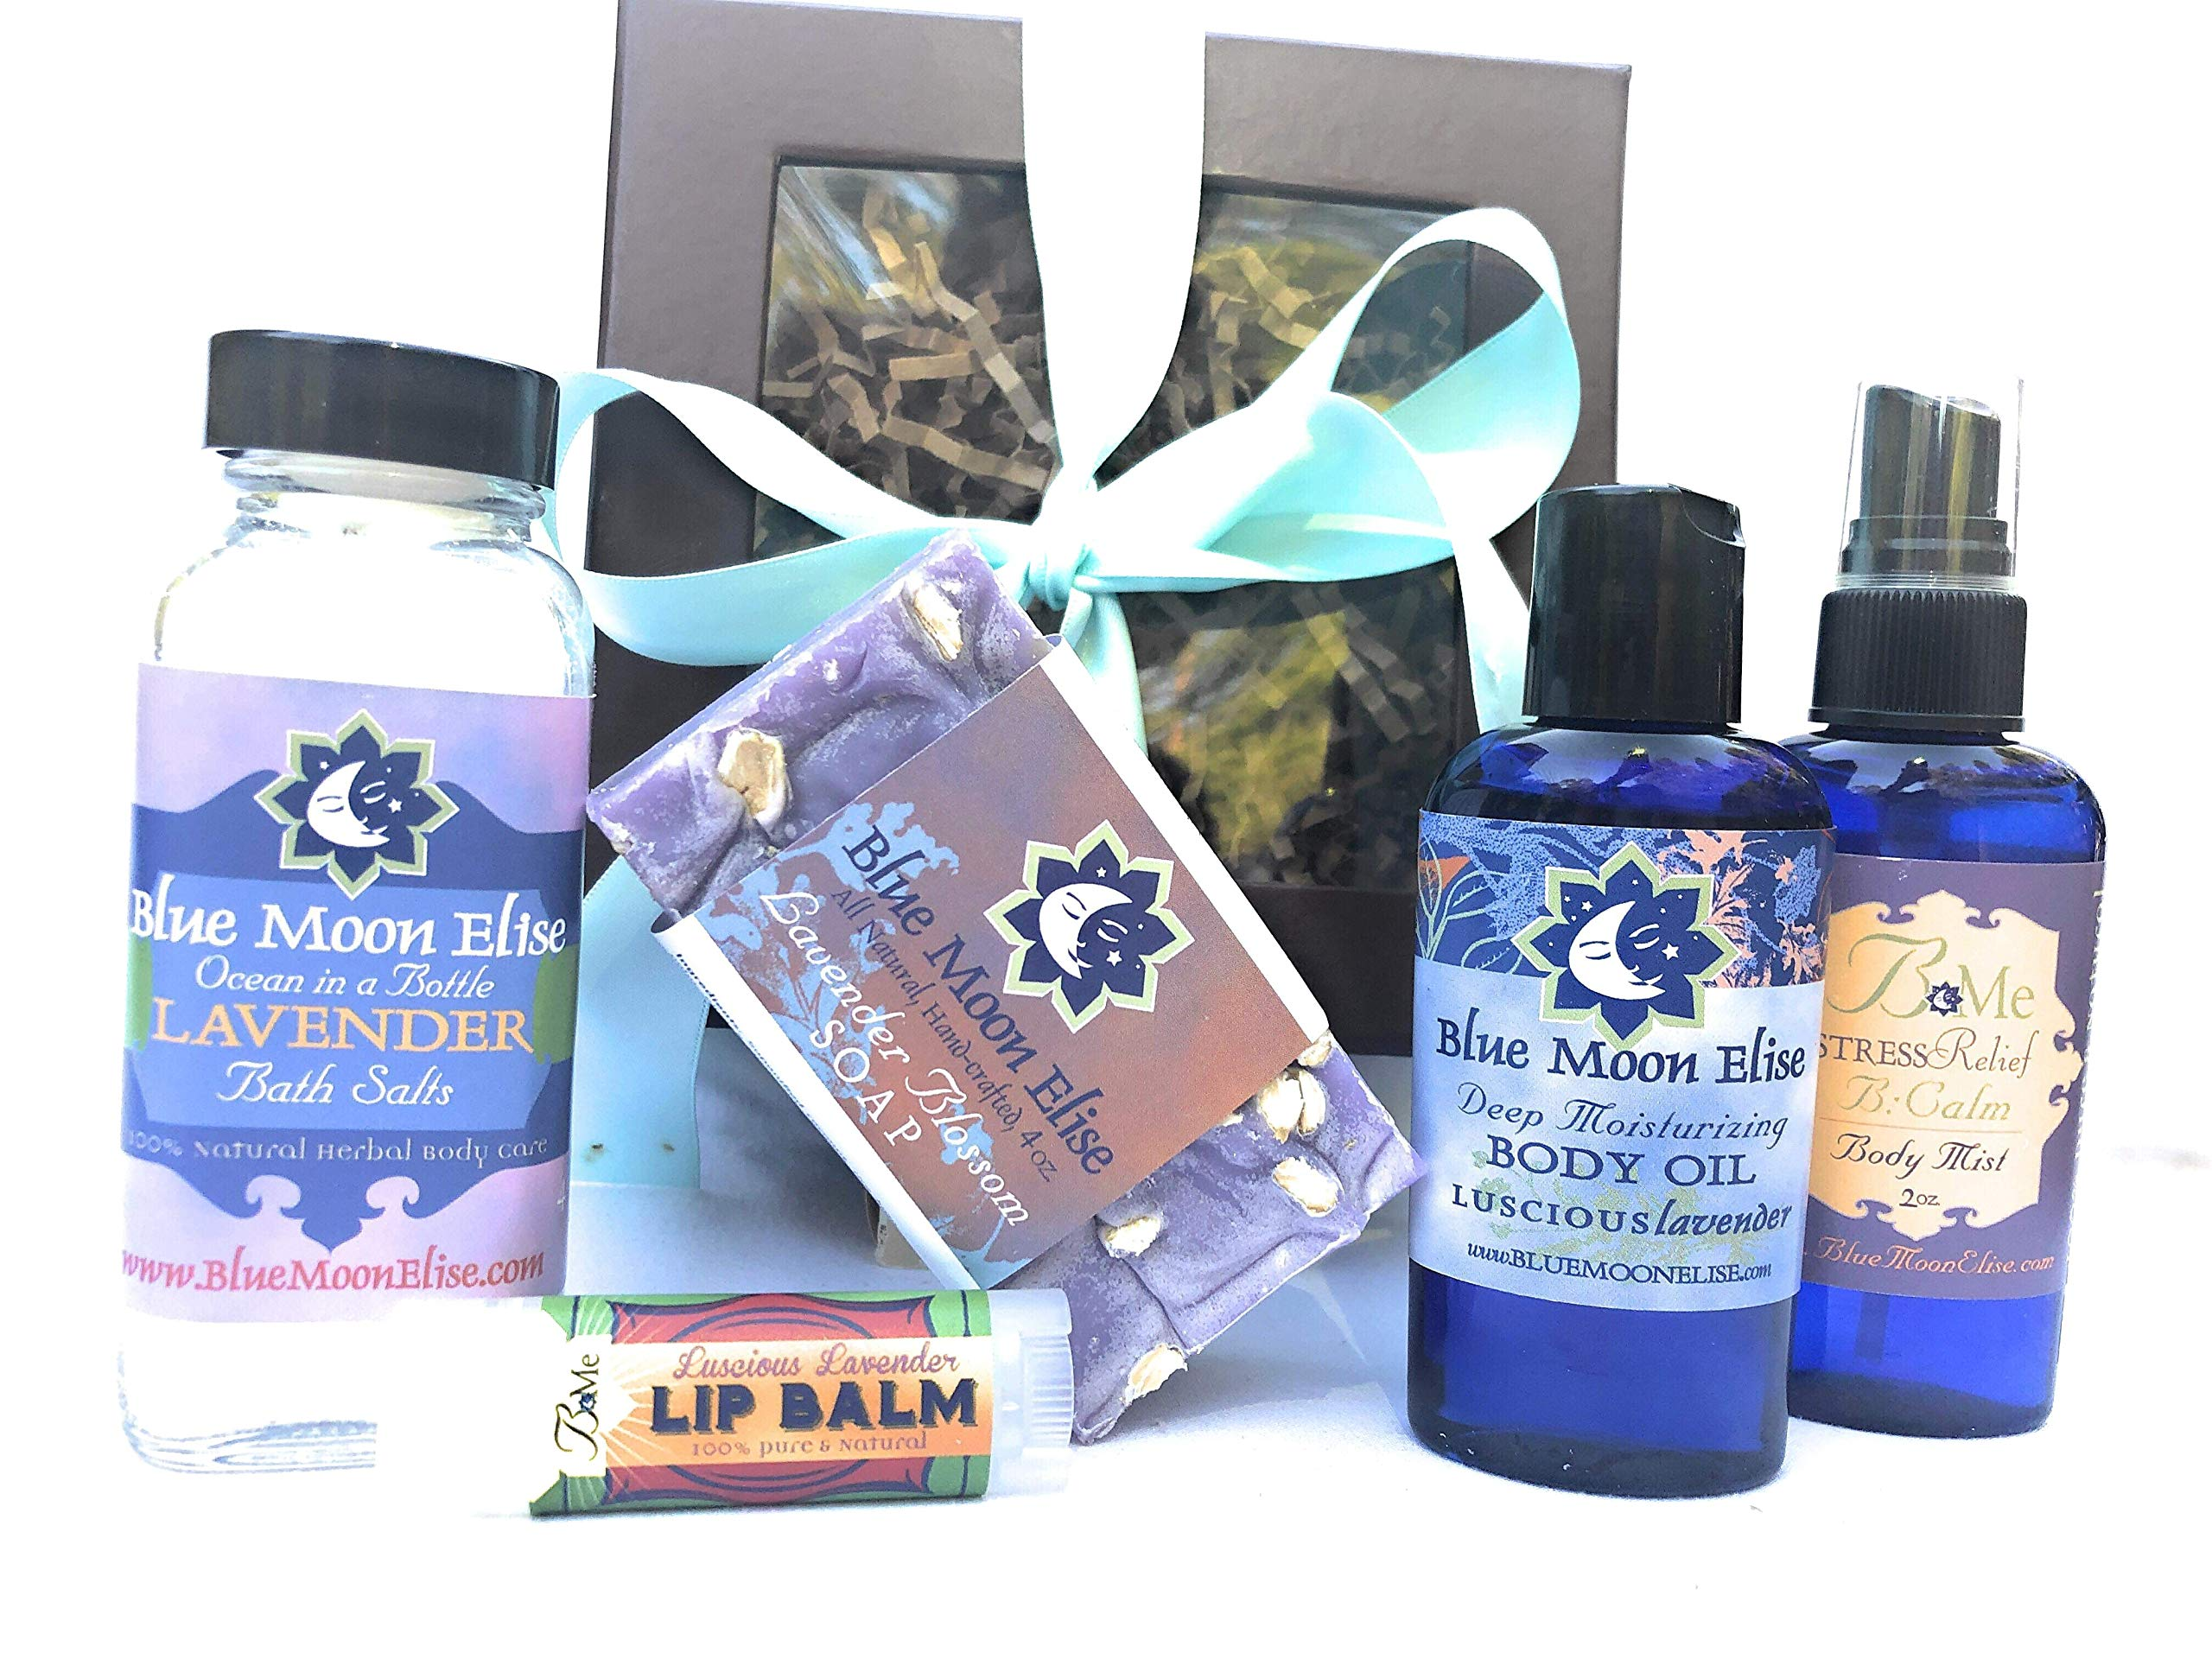 New Mom All Natural Body Care Gift Box| For Mama and Baby-Safe, relaxing and healing | Handmade Soap, Bath Salts, Body Oil, Body Mist, and Lip Balm with Lavender Essential Oil| Healthy Choice for Mom!